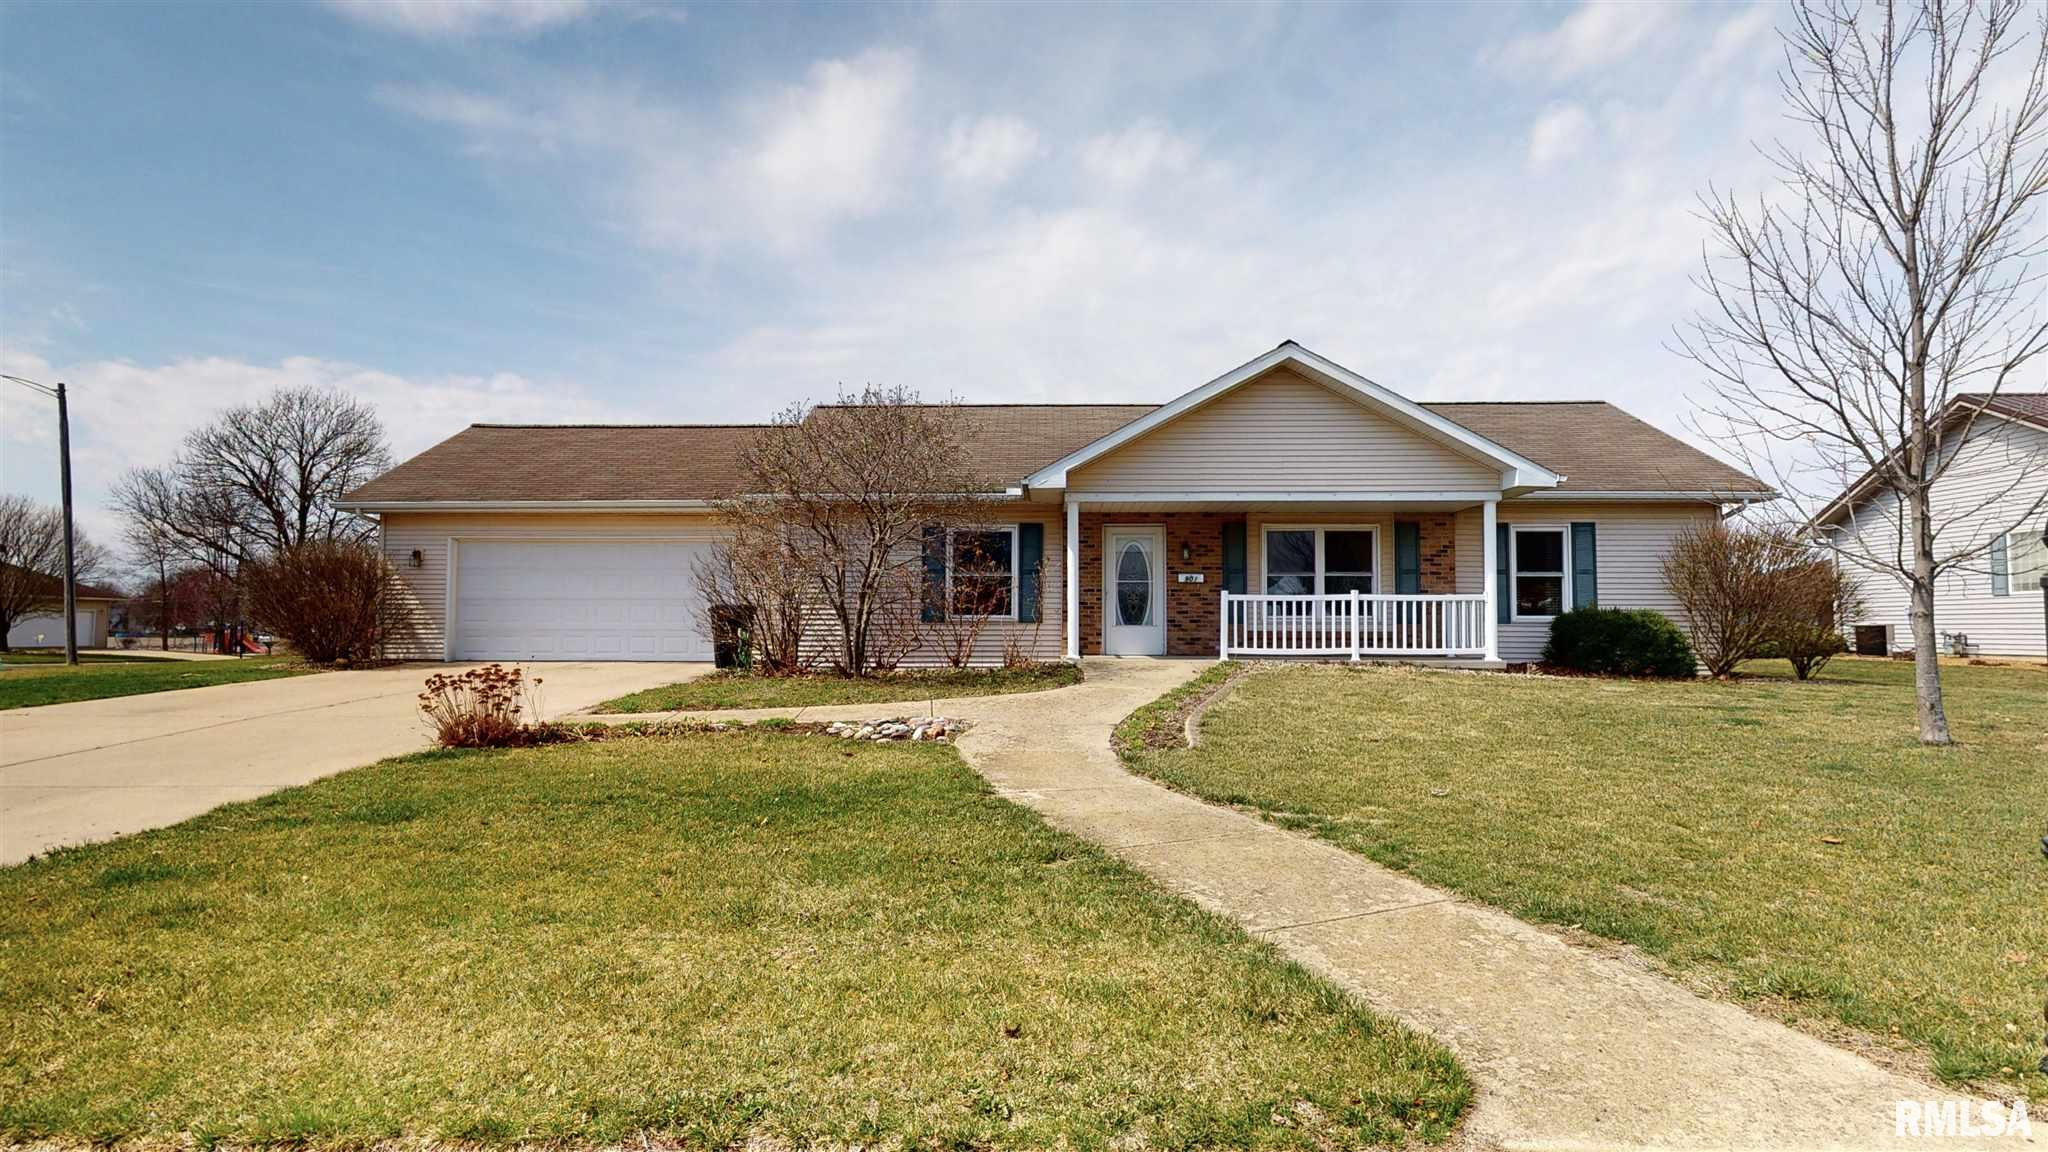 901 N EASY Property Photo - Roanoke, IL real estate listing